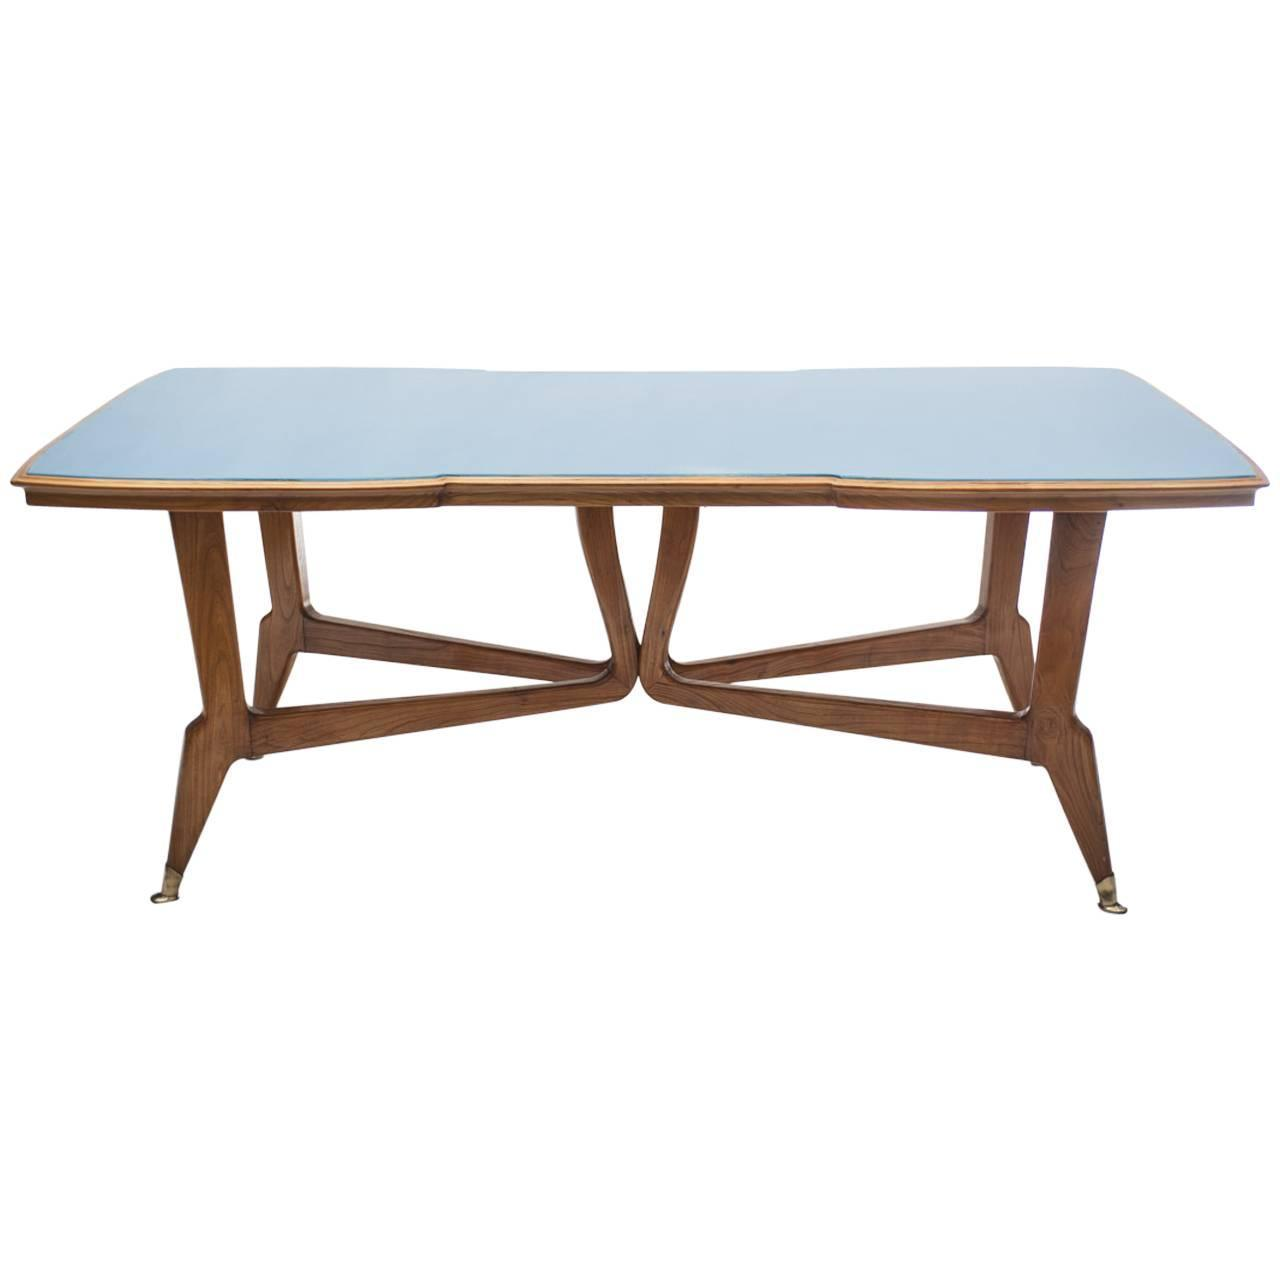 Dining Table 1950s At 1stdibs